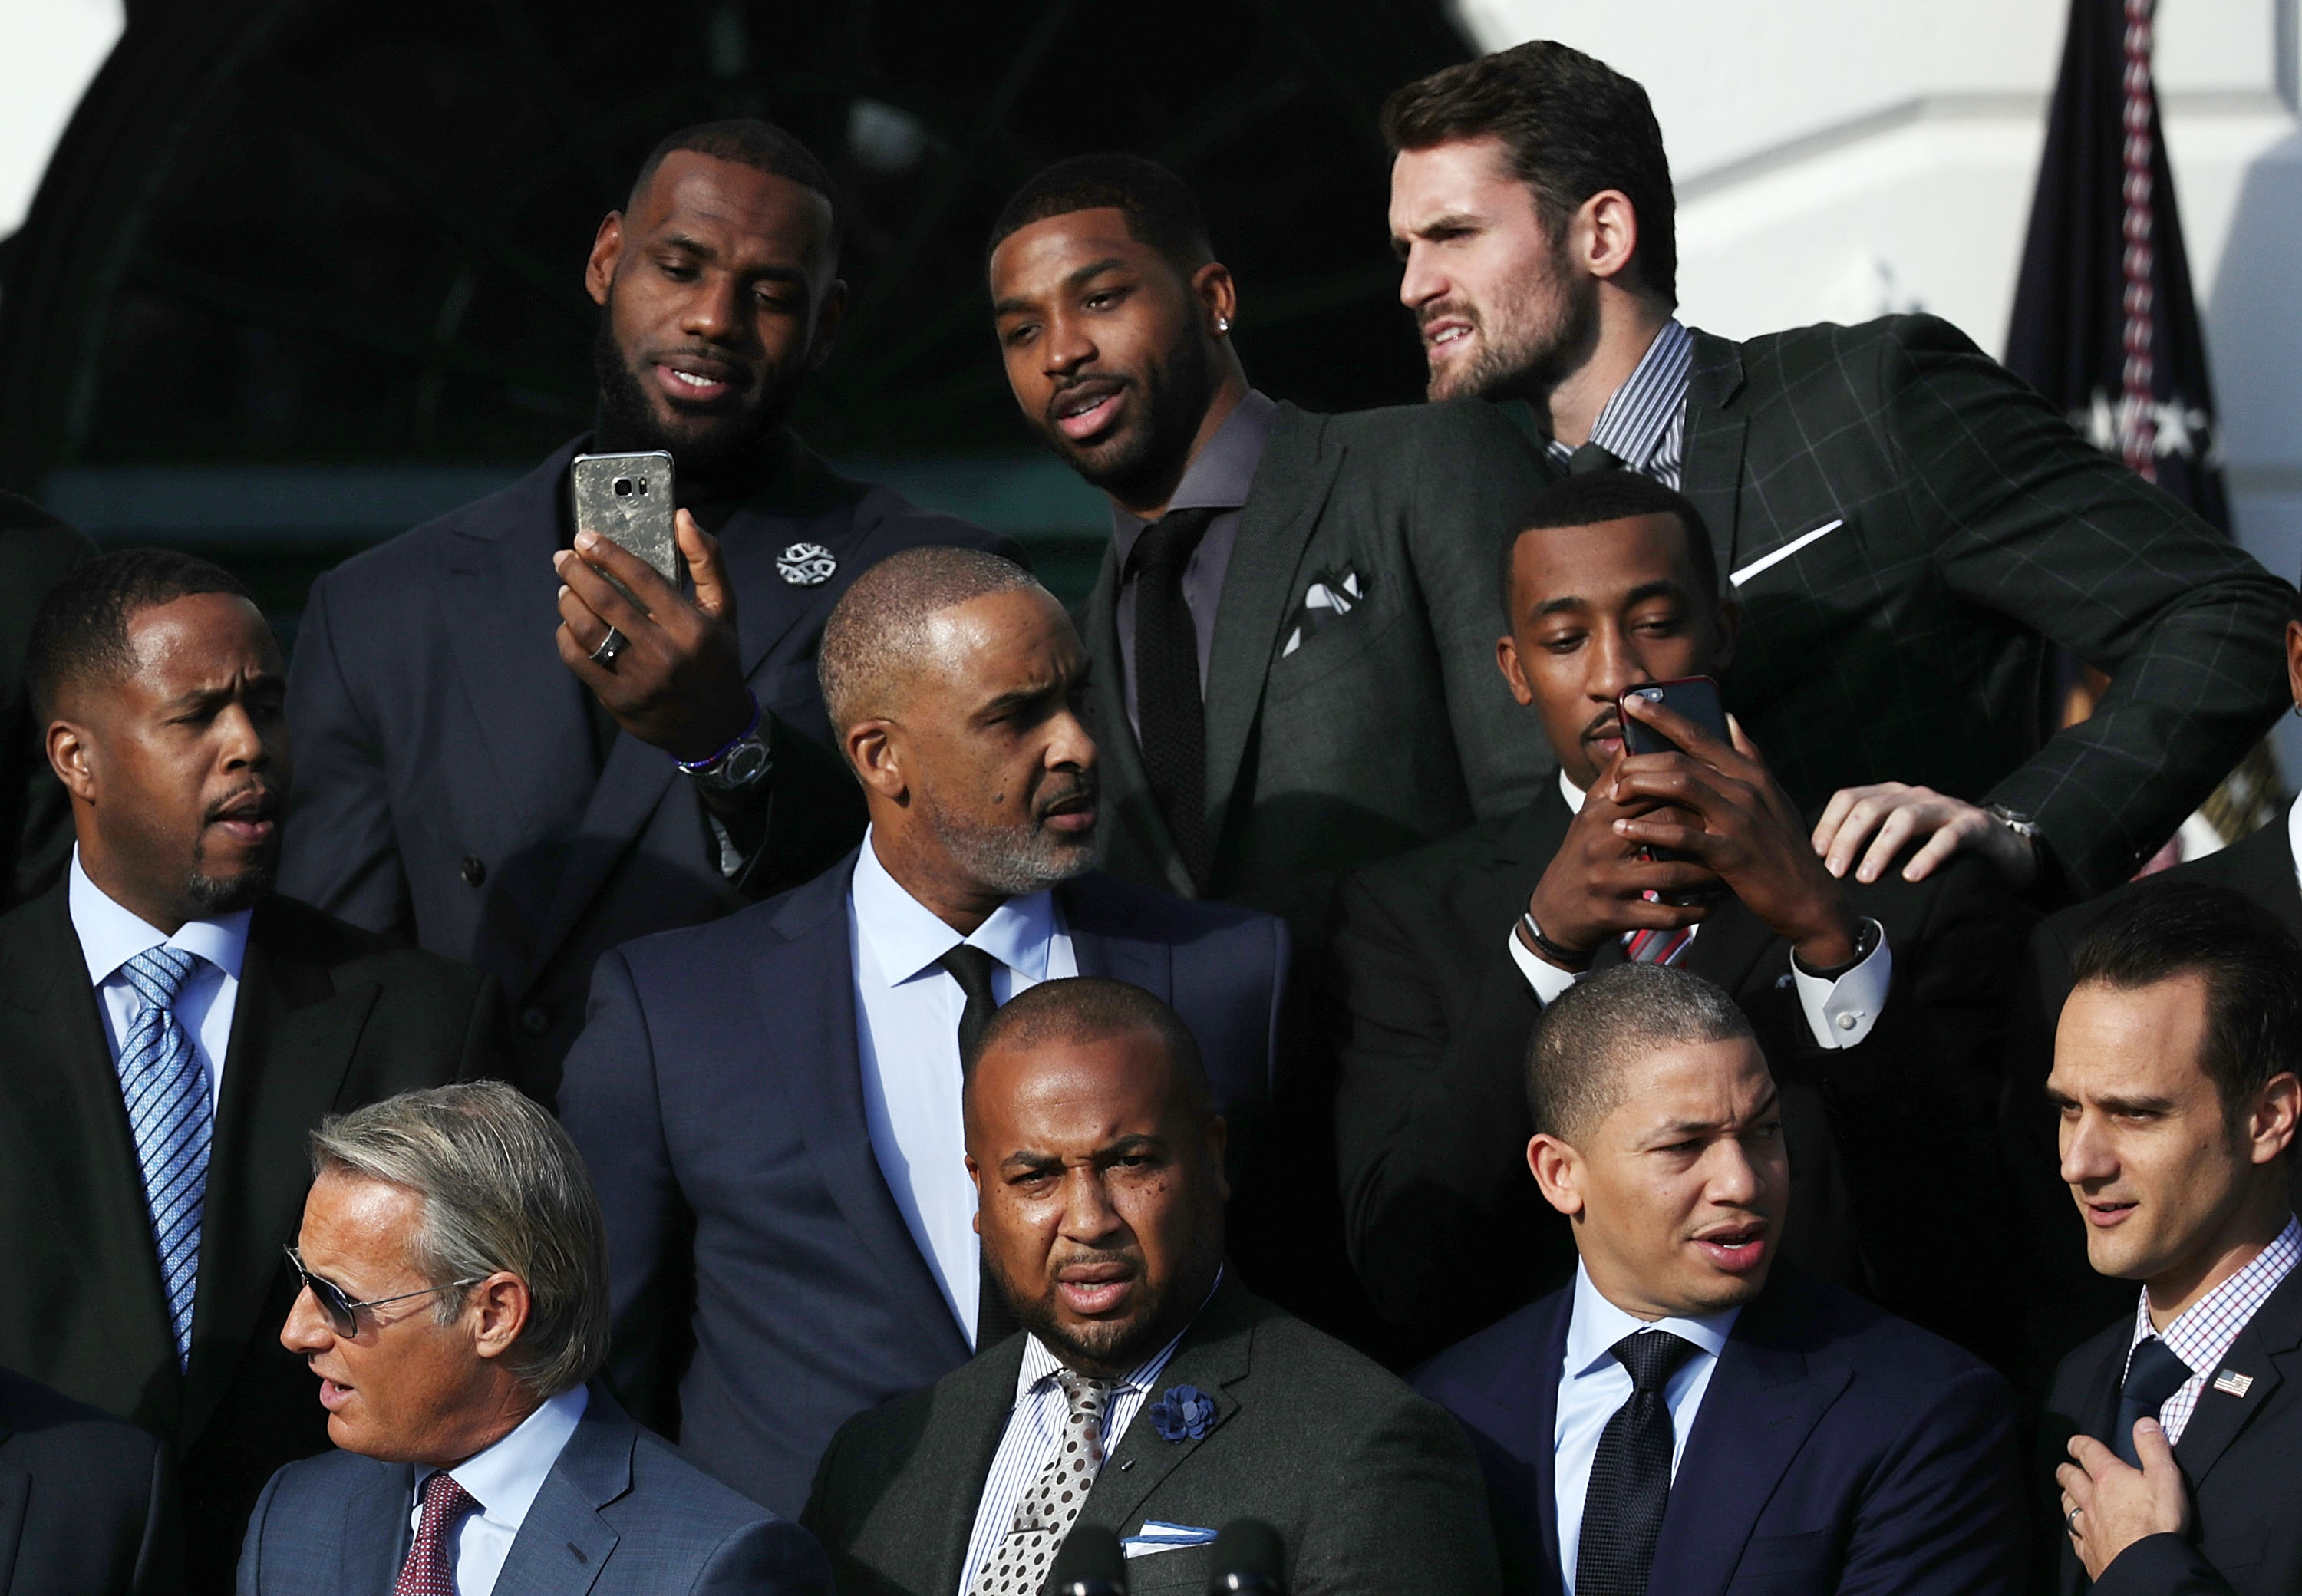 President Obama Hosts NBA Champion Cleveland Cavaliers At The White House